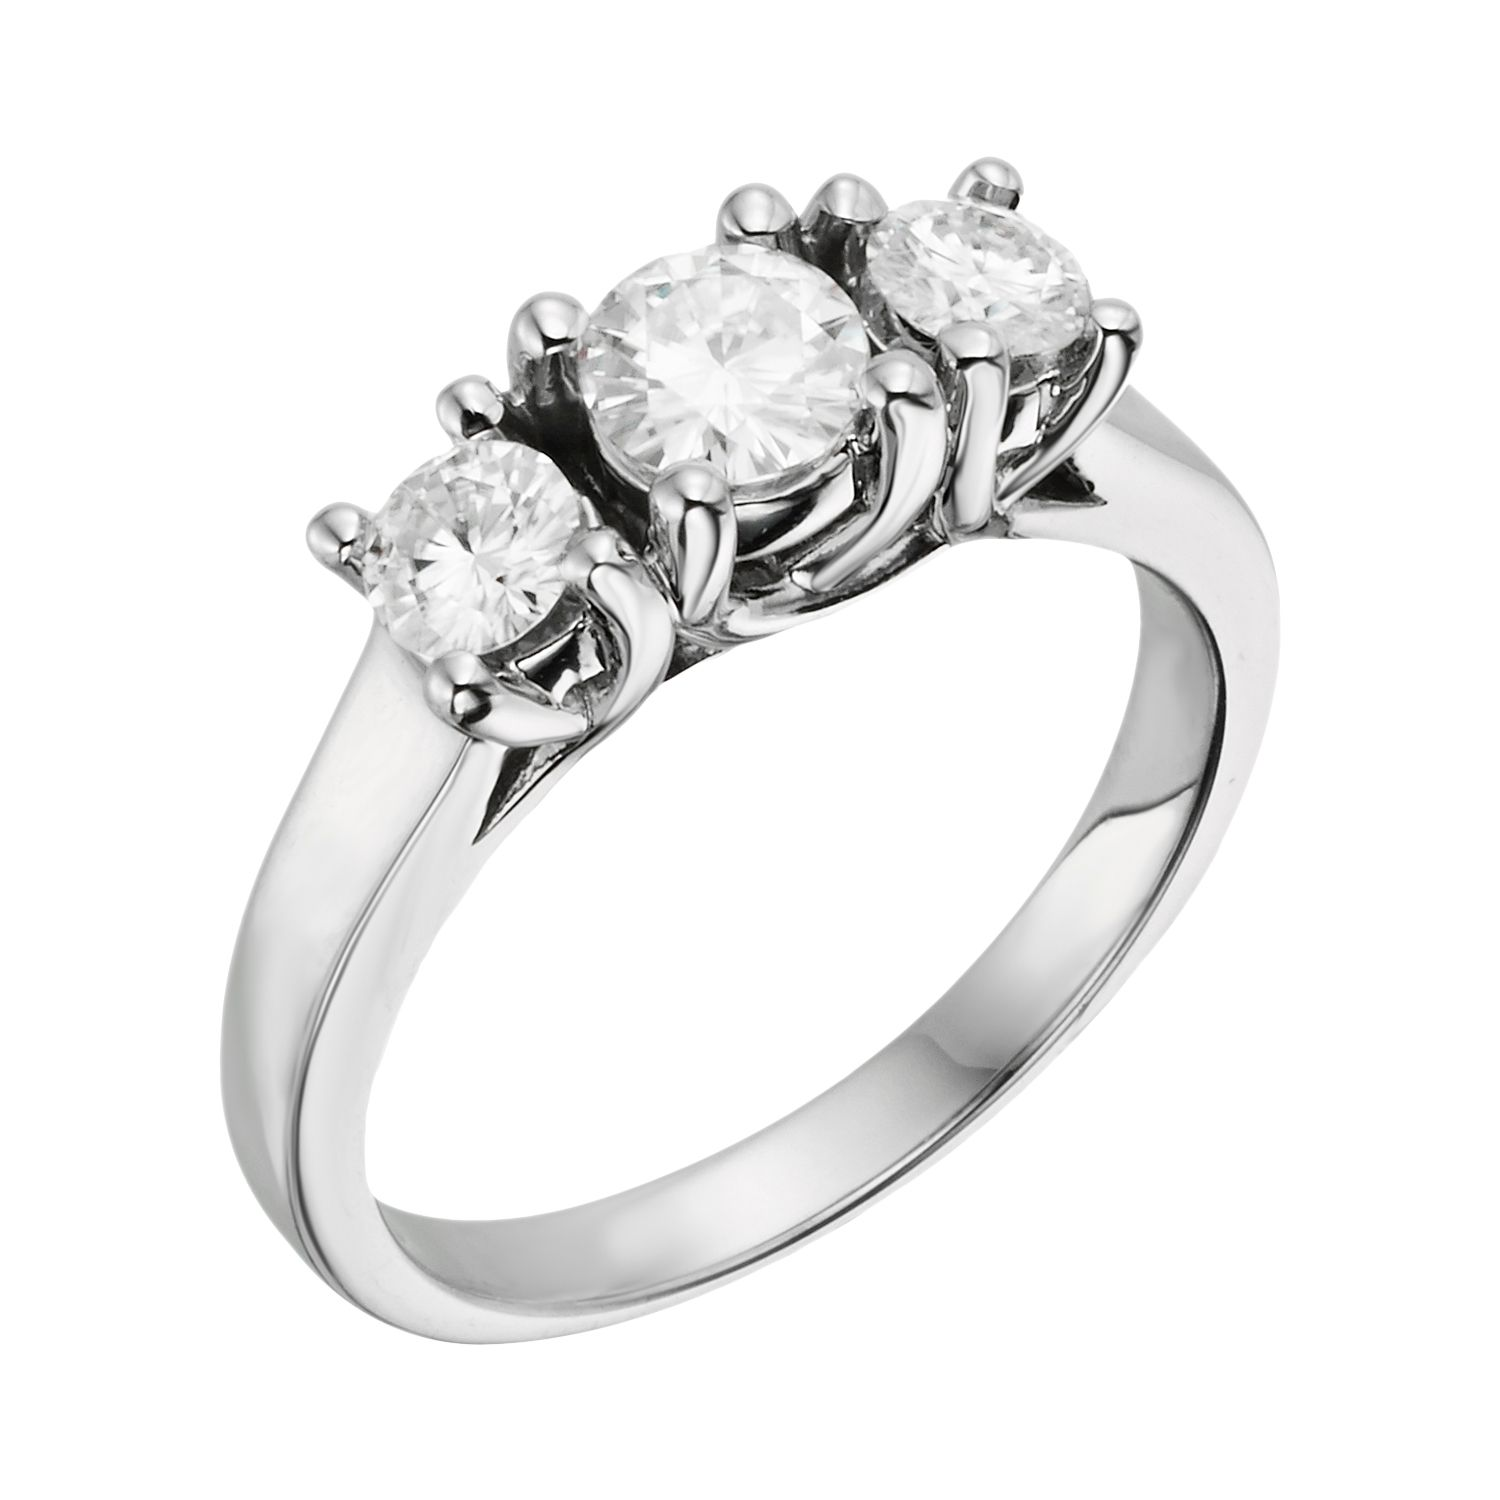 band engagement diamond ring mdc rings diamonds tcw in prongs from radiant engagementringsre pave cfm platinum nyc monzonite